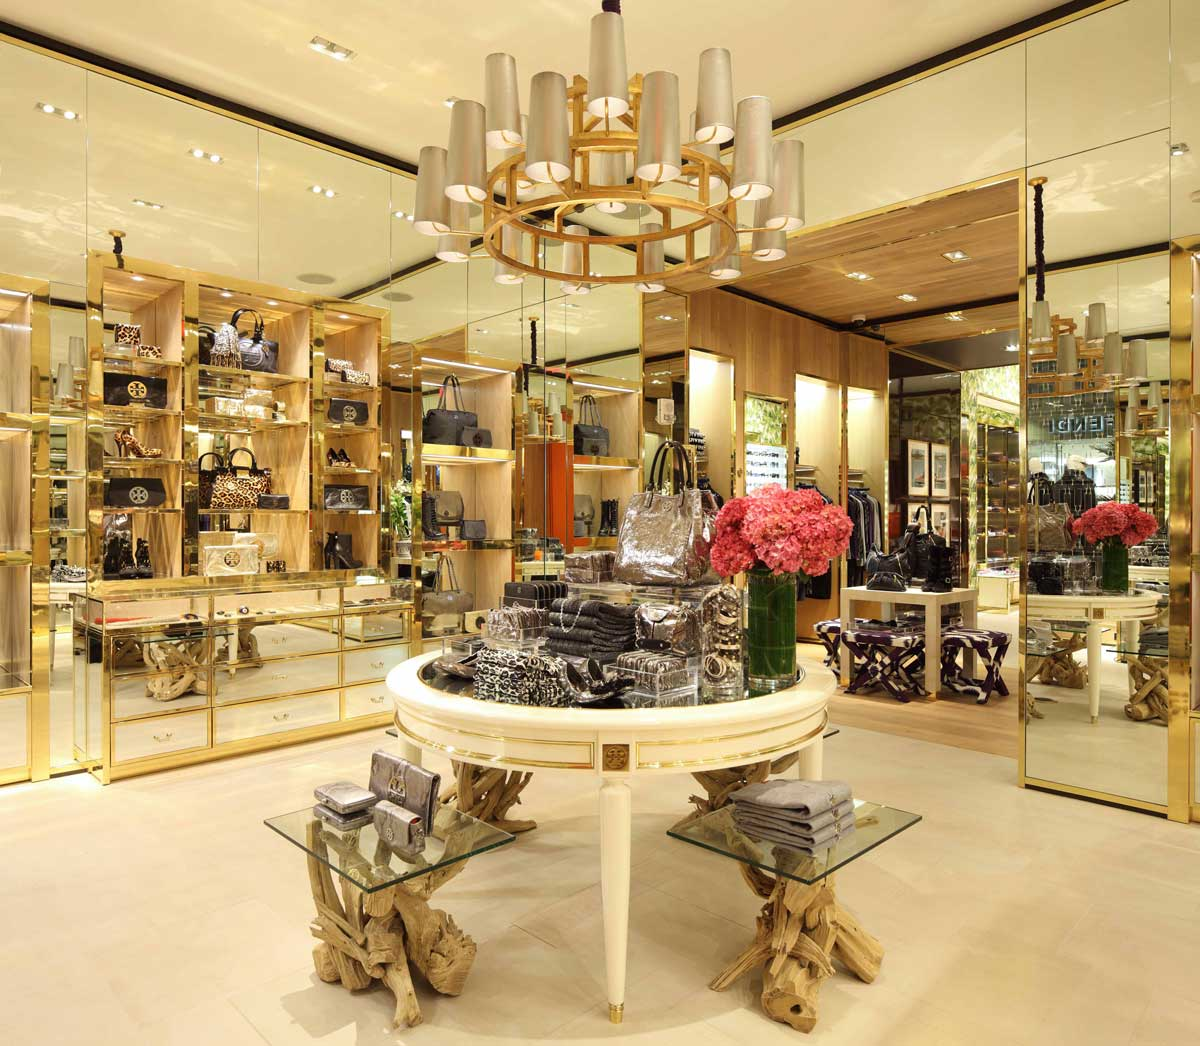 Tory Burch store interior